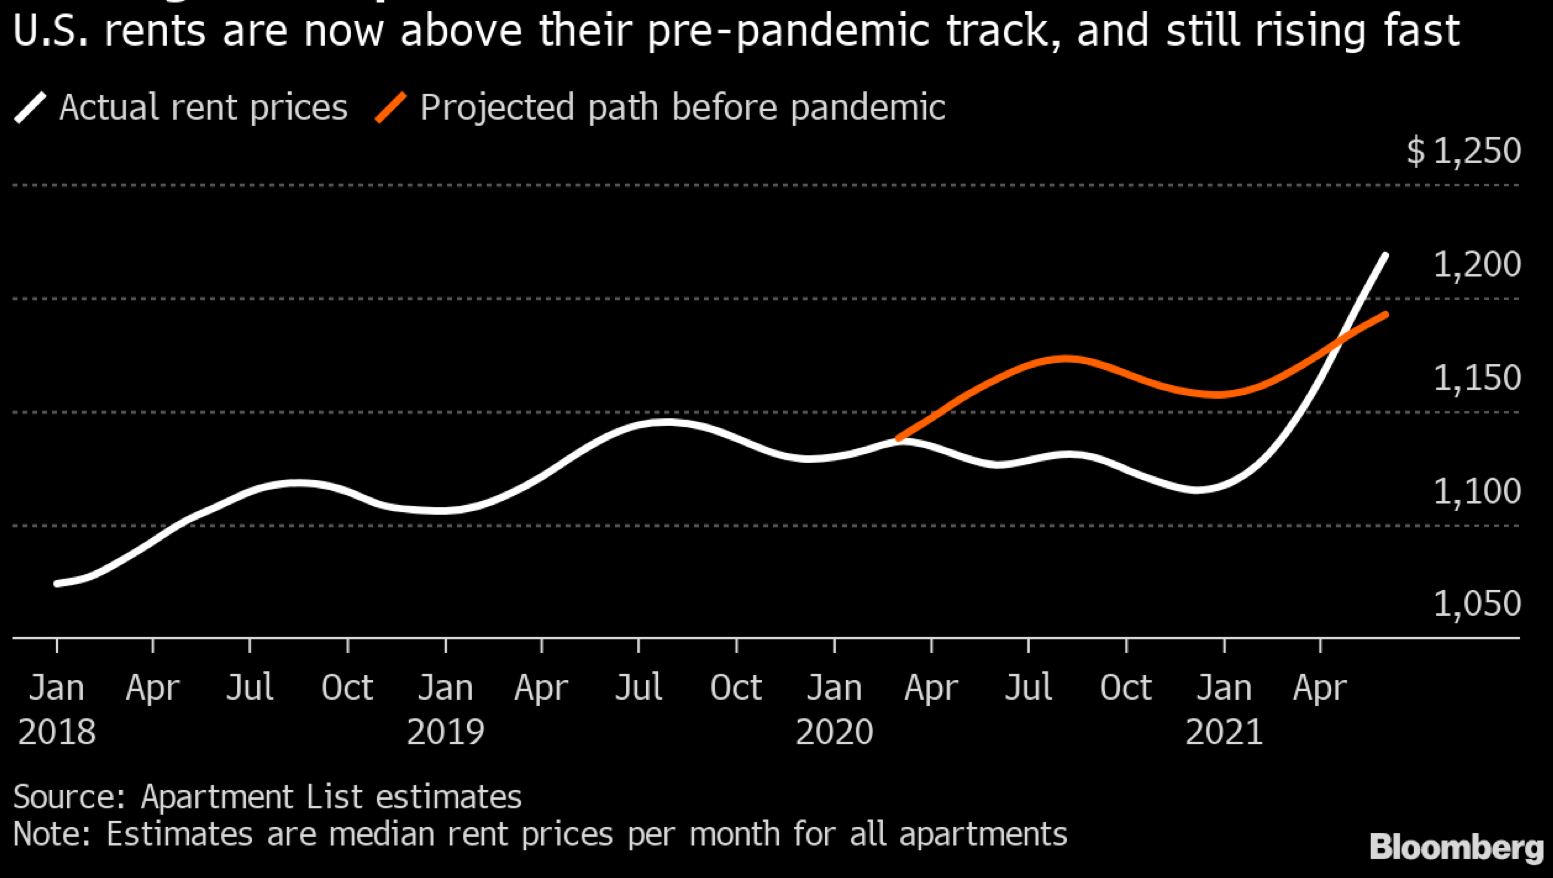 U.S. rents are rising fast and are now above pre-pandemic levels